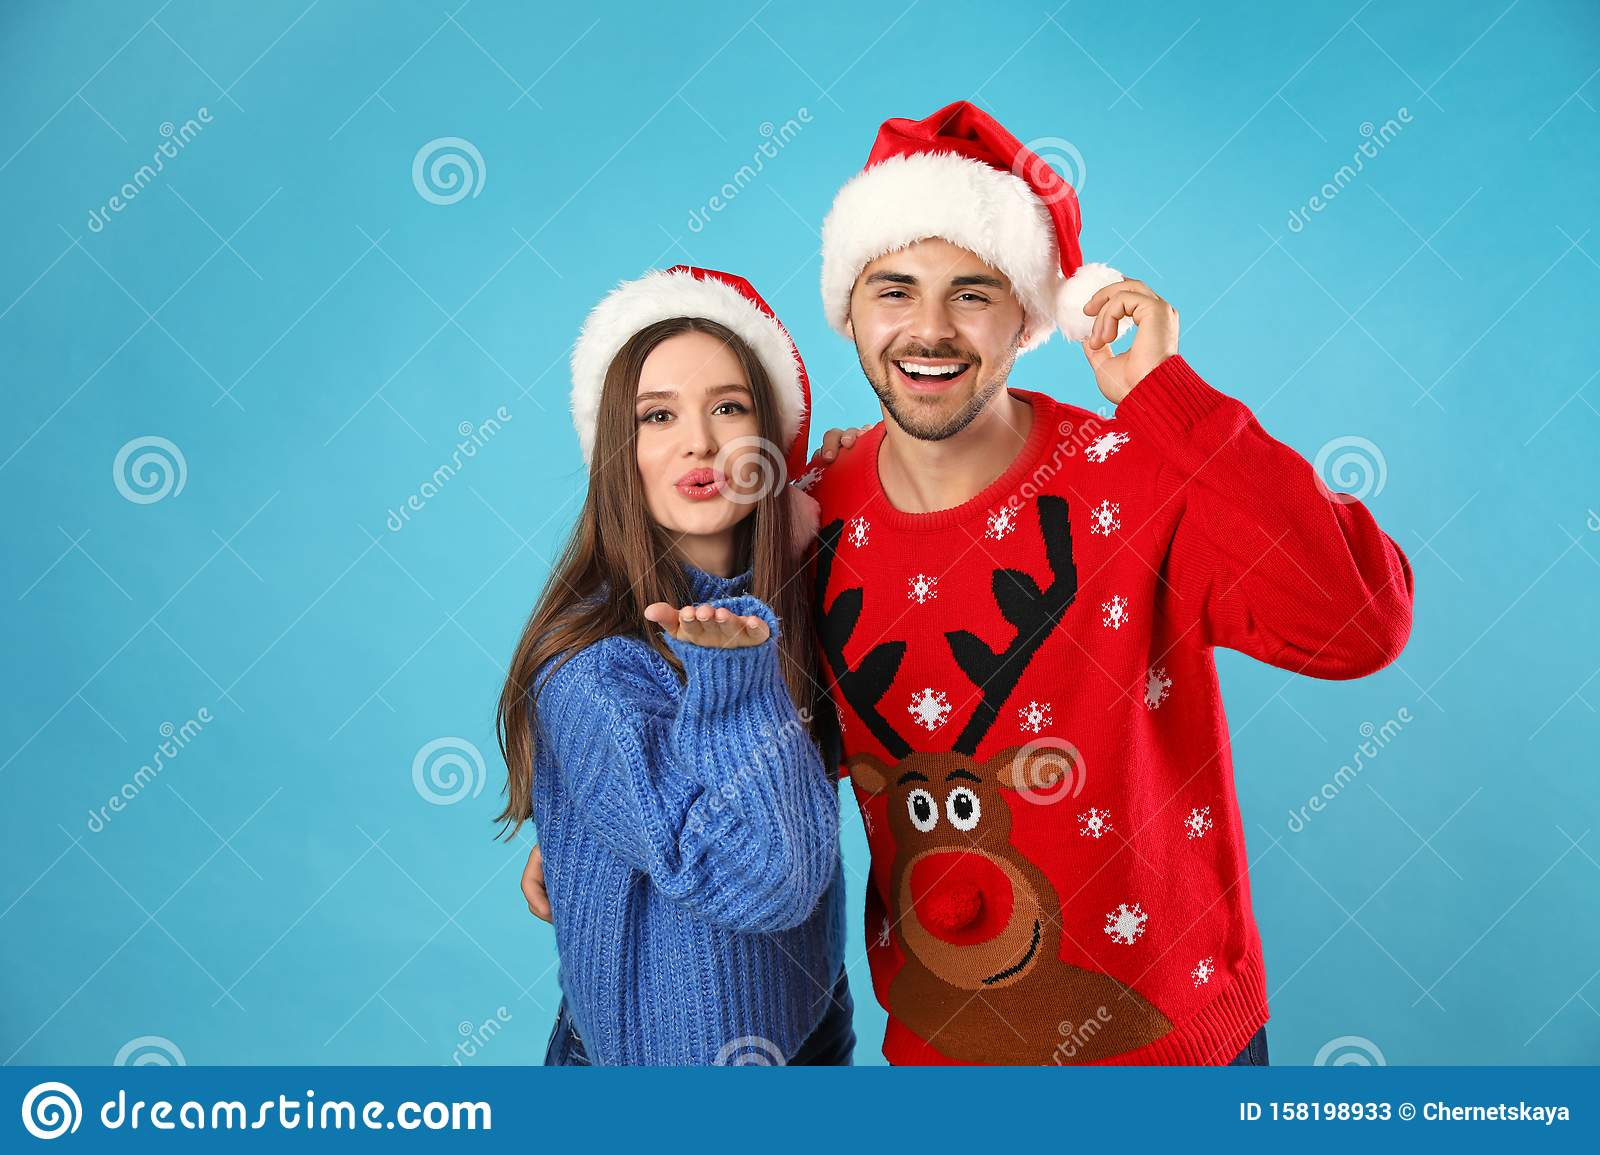 Couple wearing Christmas sweaters and Santa hats on background